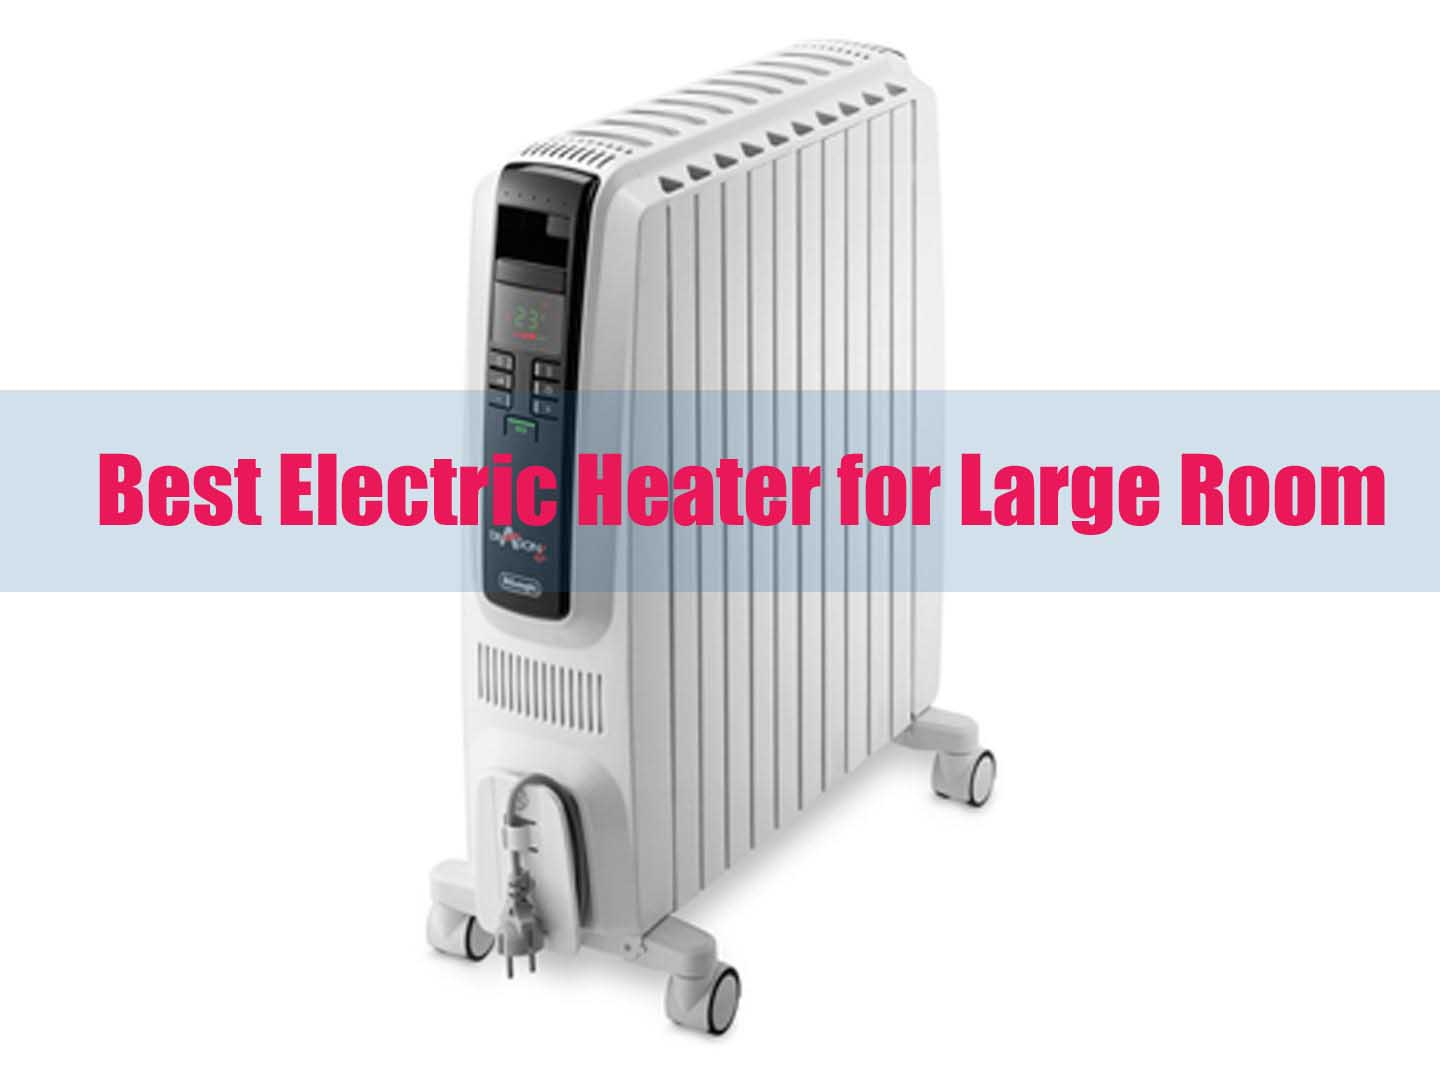 10 Best Electric Heater For Large Room 2019 Detailed And Explained